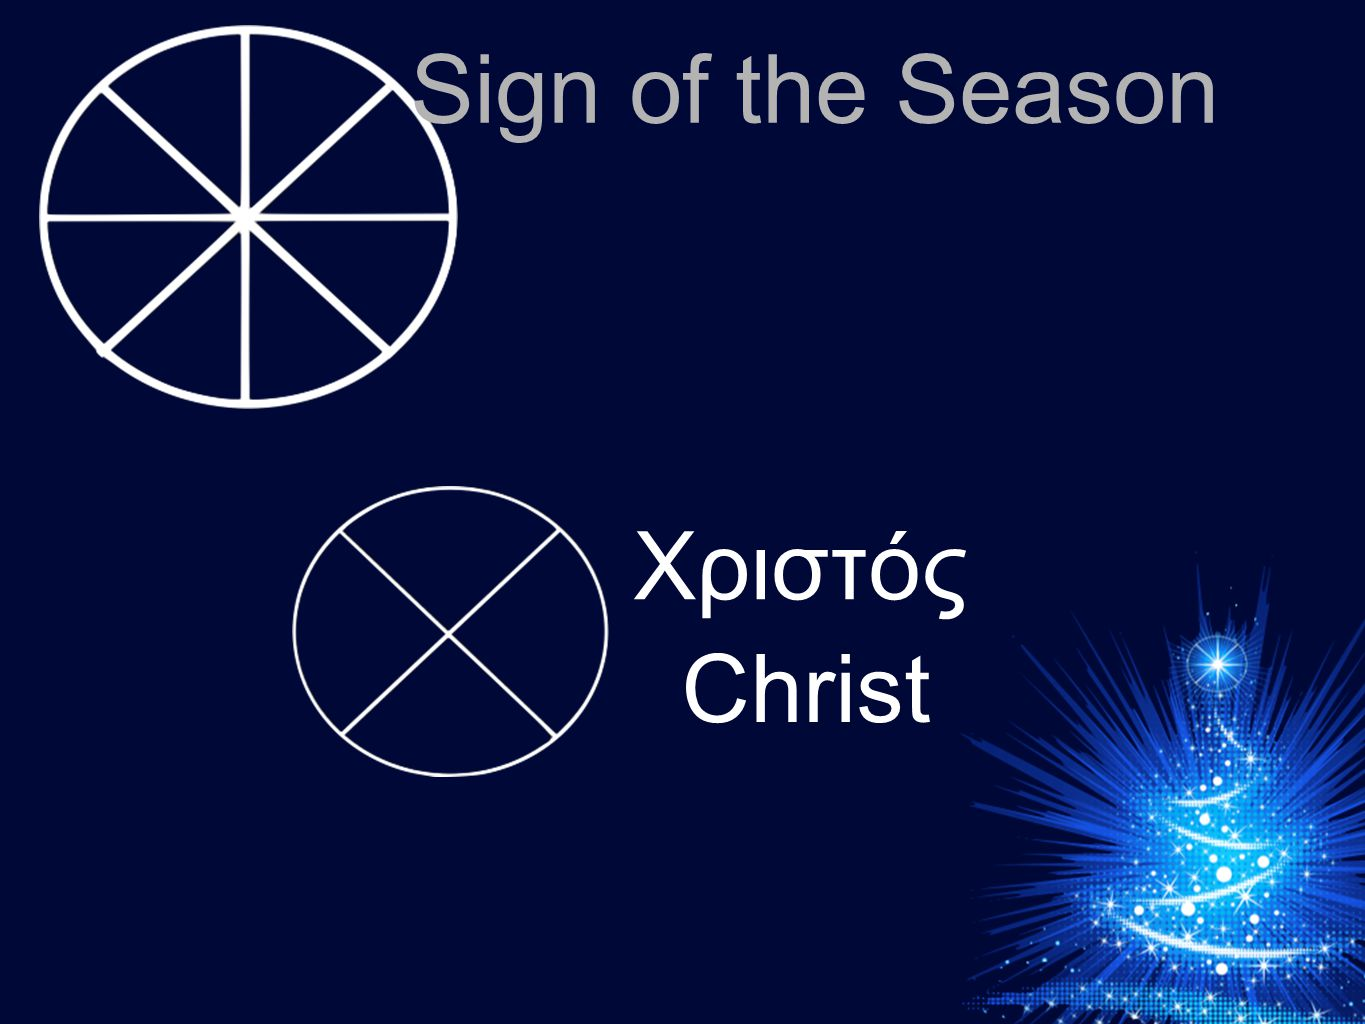 Χριστός Christ Sign of the Season